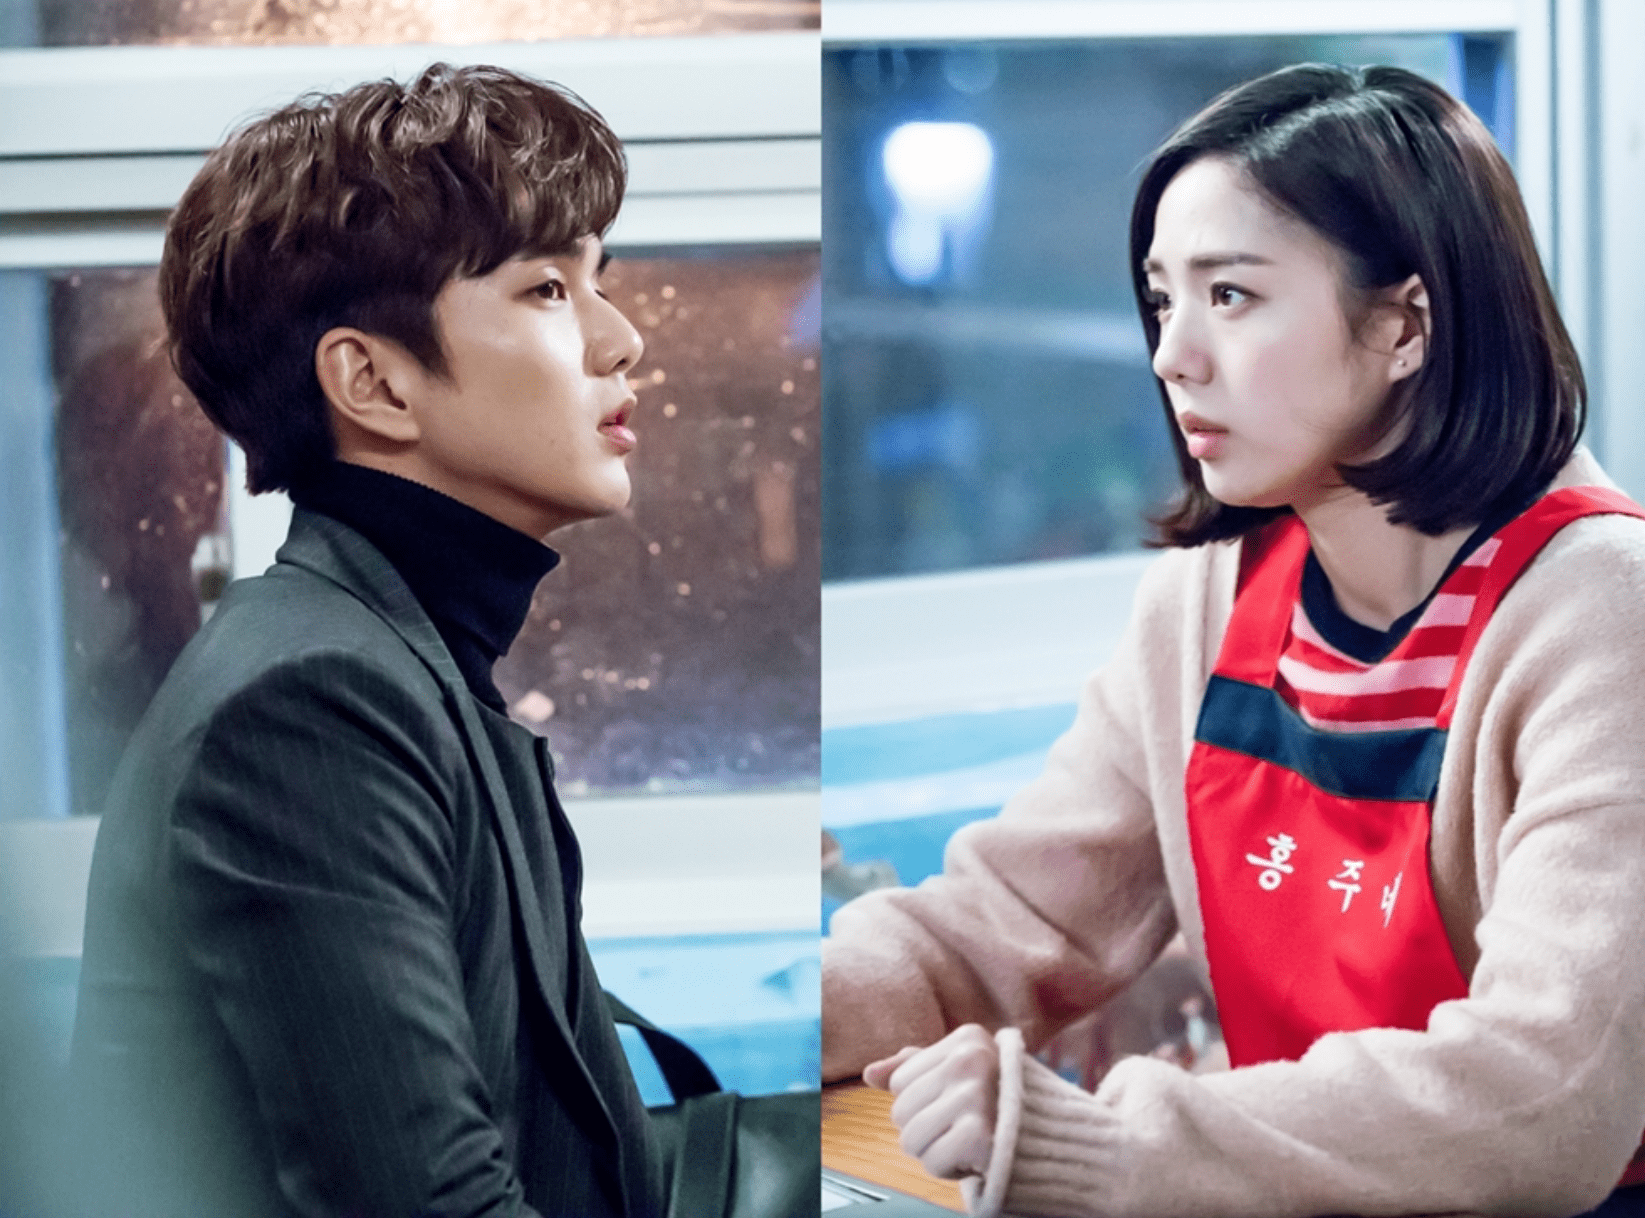 """Yoo Seung Ho Meets Up With A Transformed Chae Soo Bin In """"I Am Not A Robot"""""""